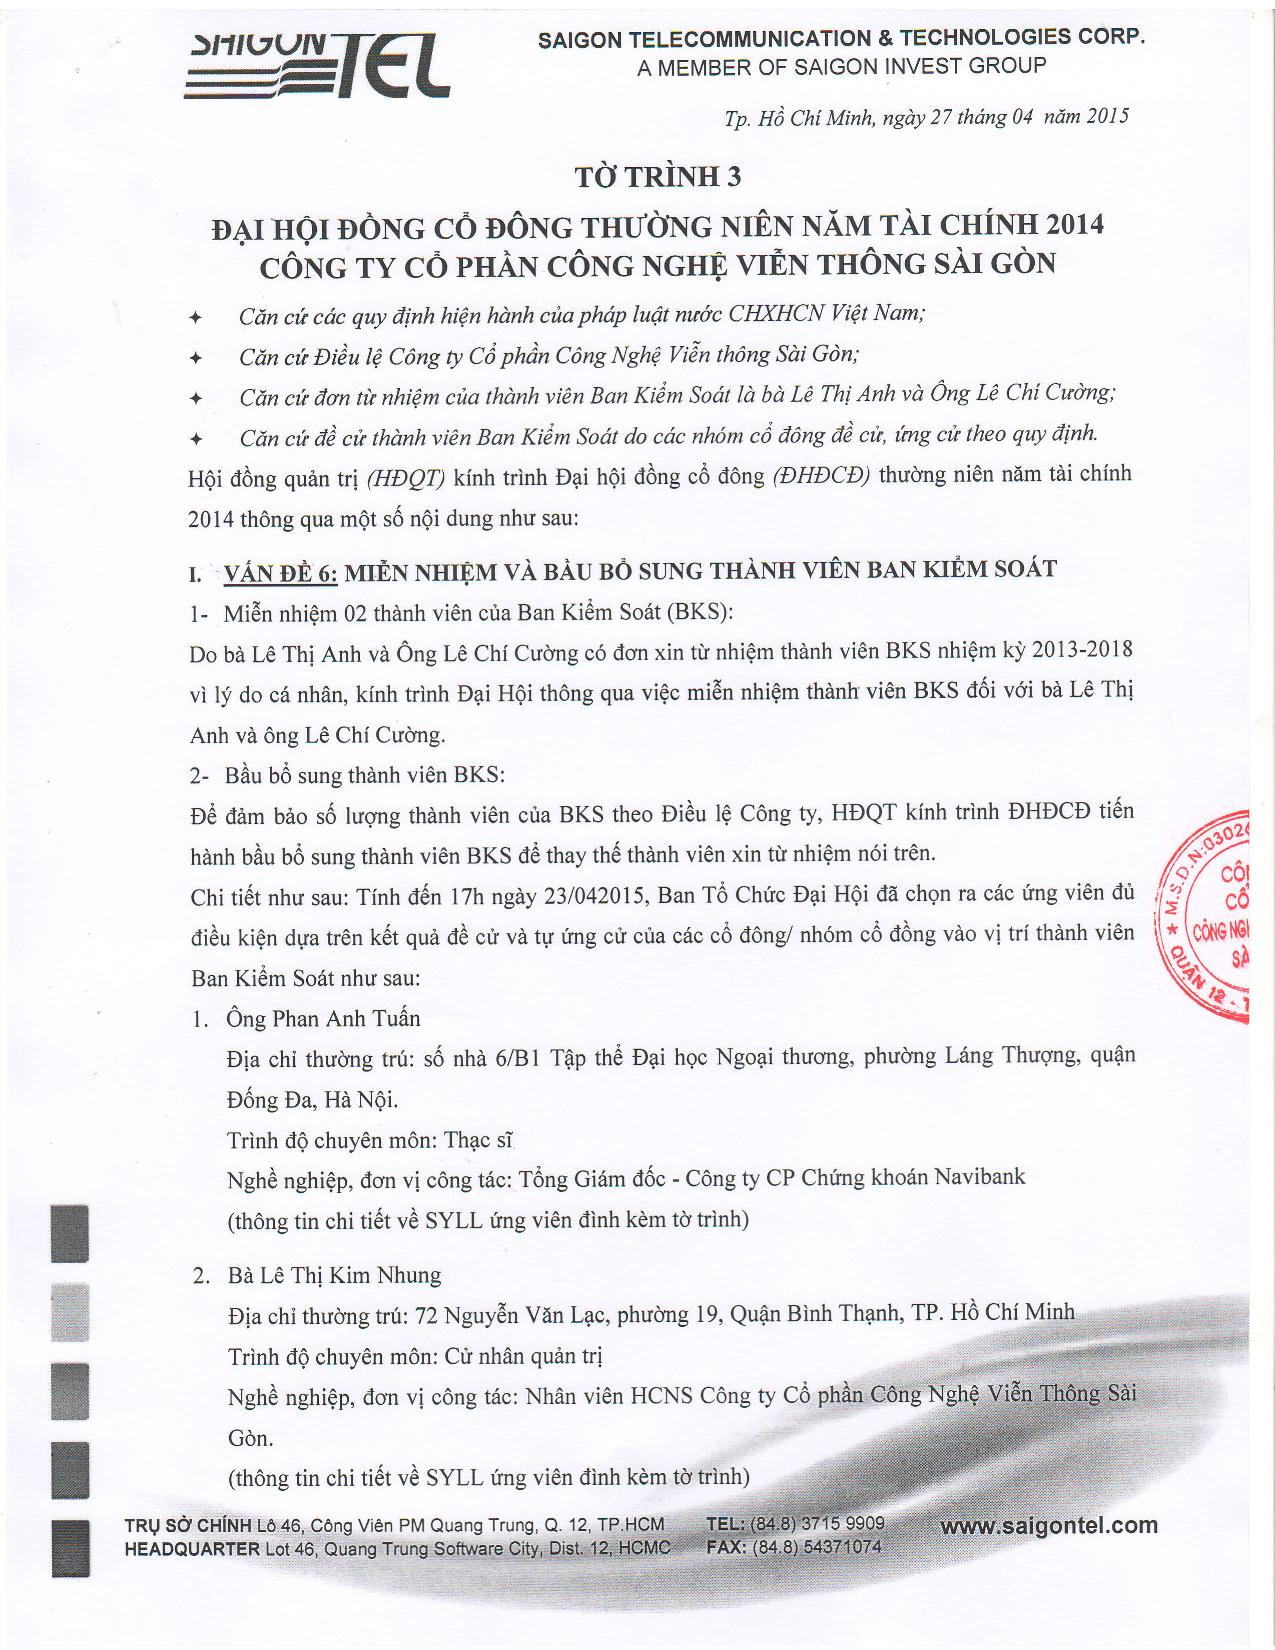 To_trinh_DHCD_2015-page-007.jpg